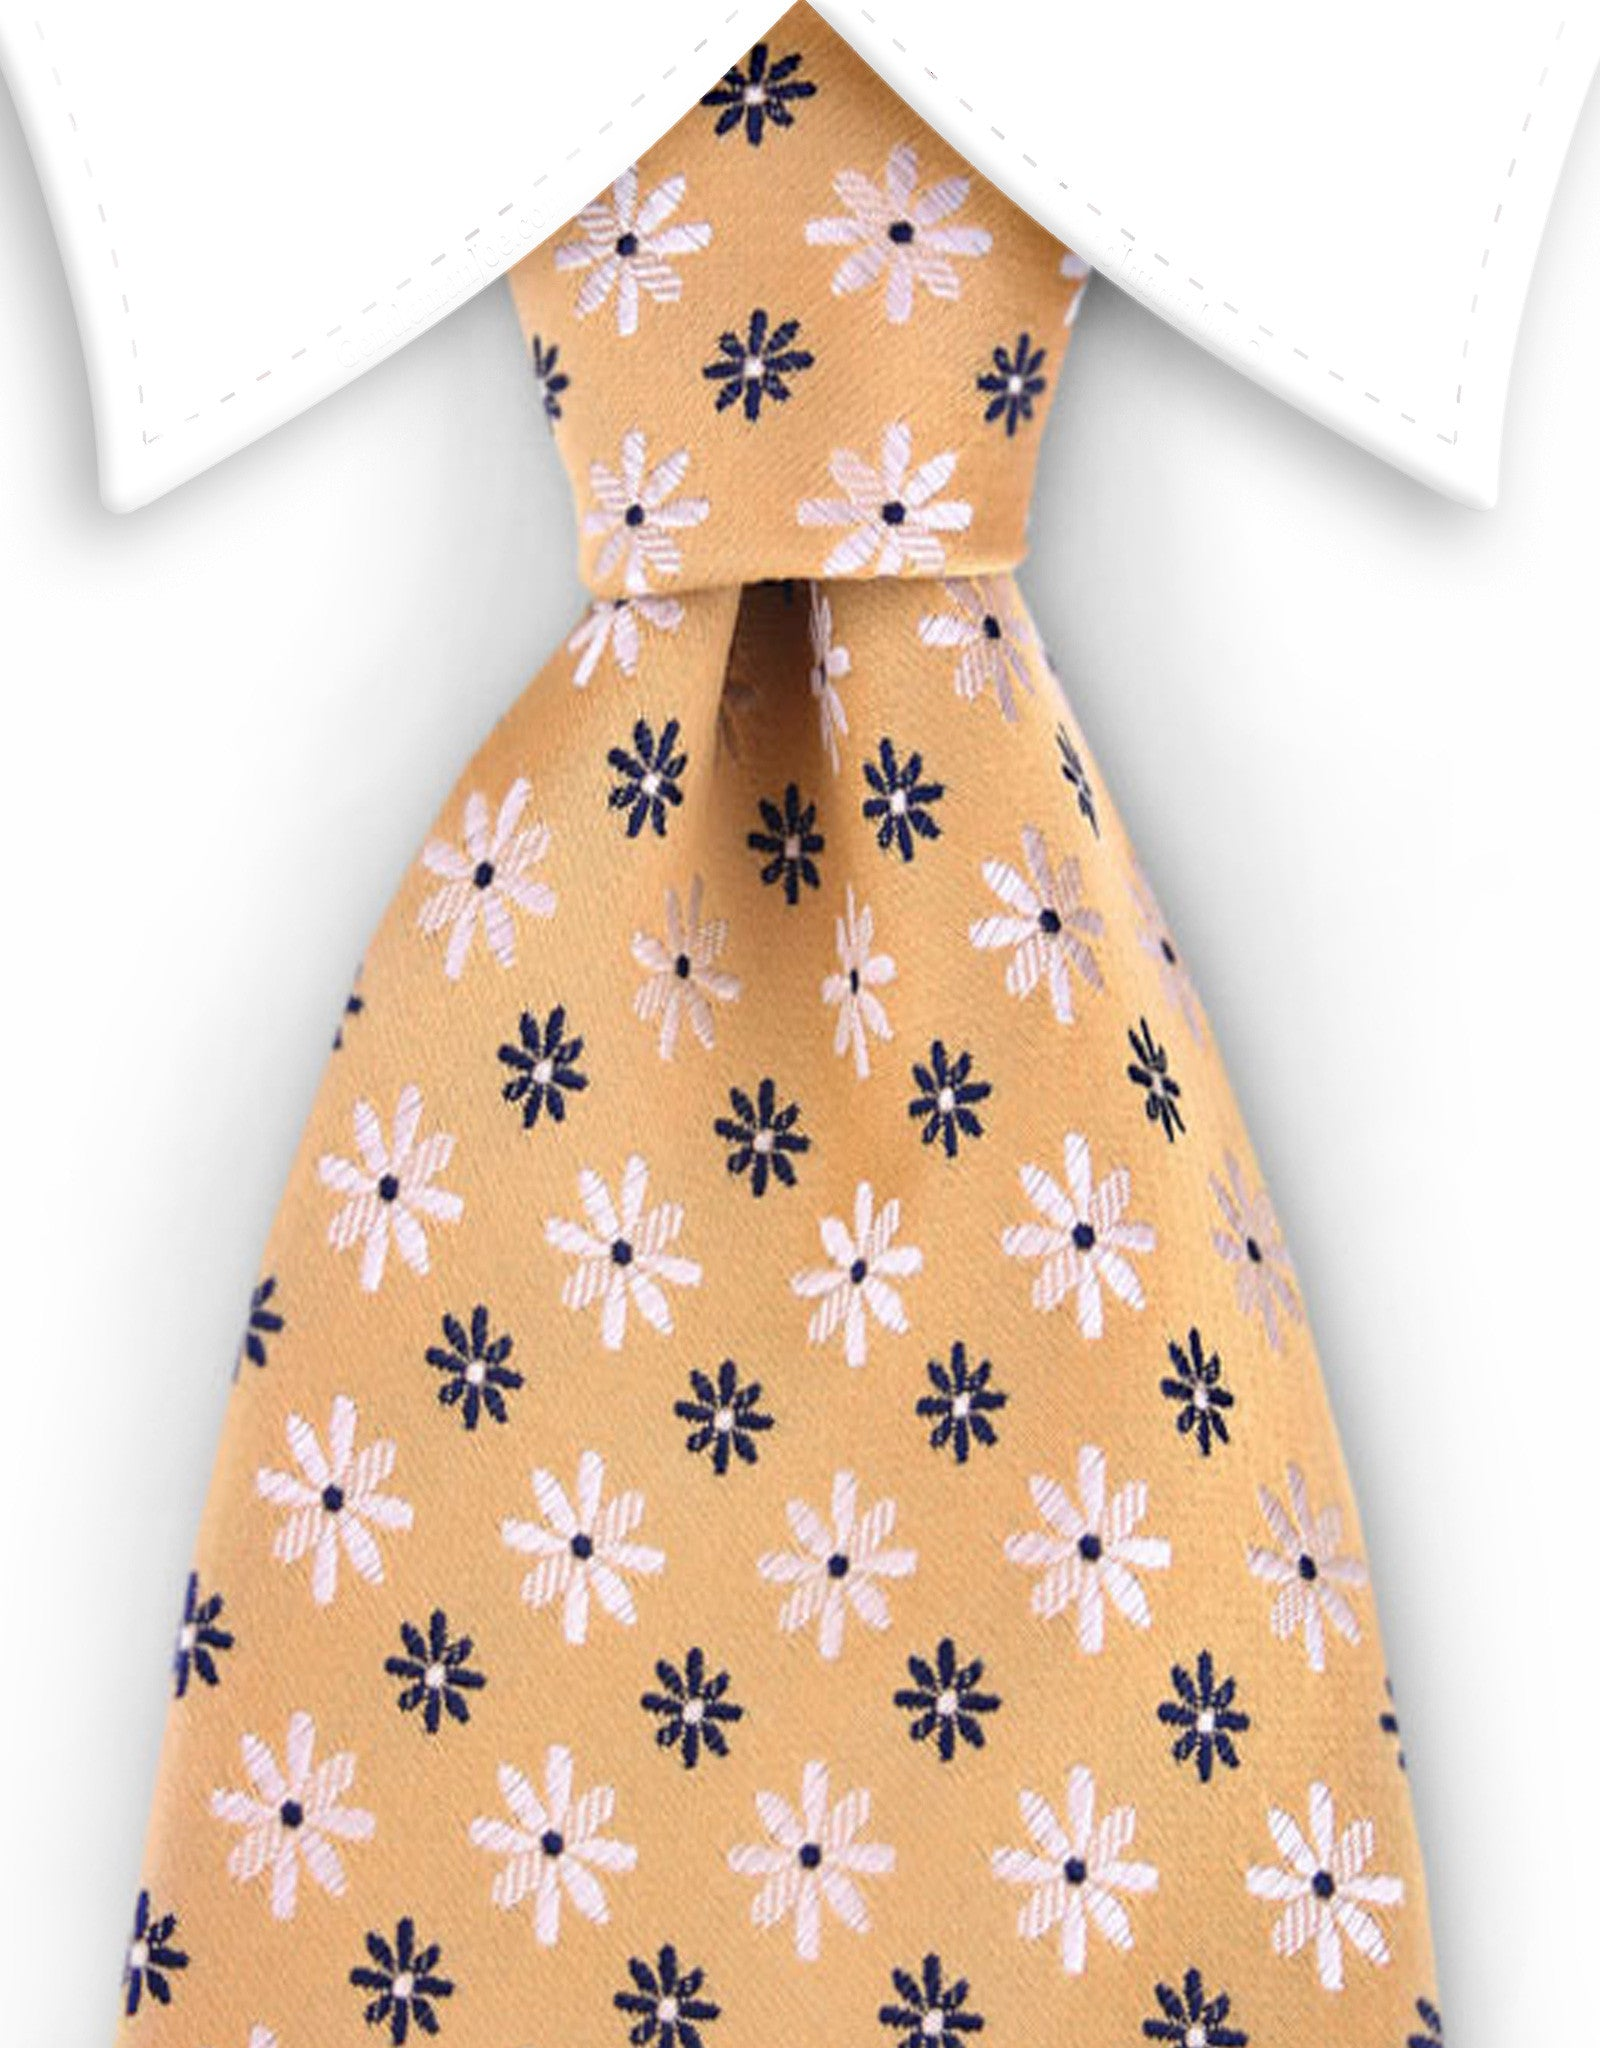 Yellow tie with daisy flowers